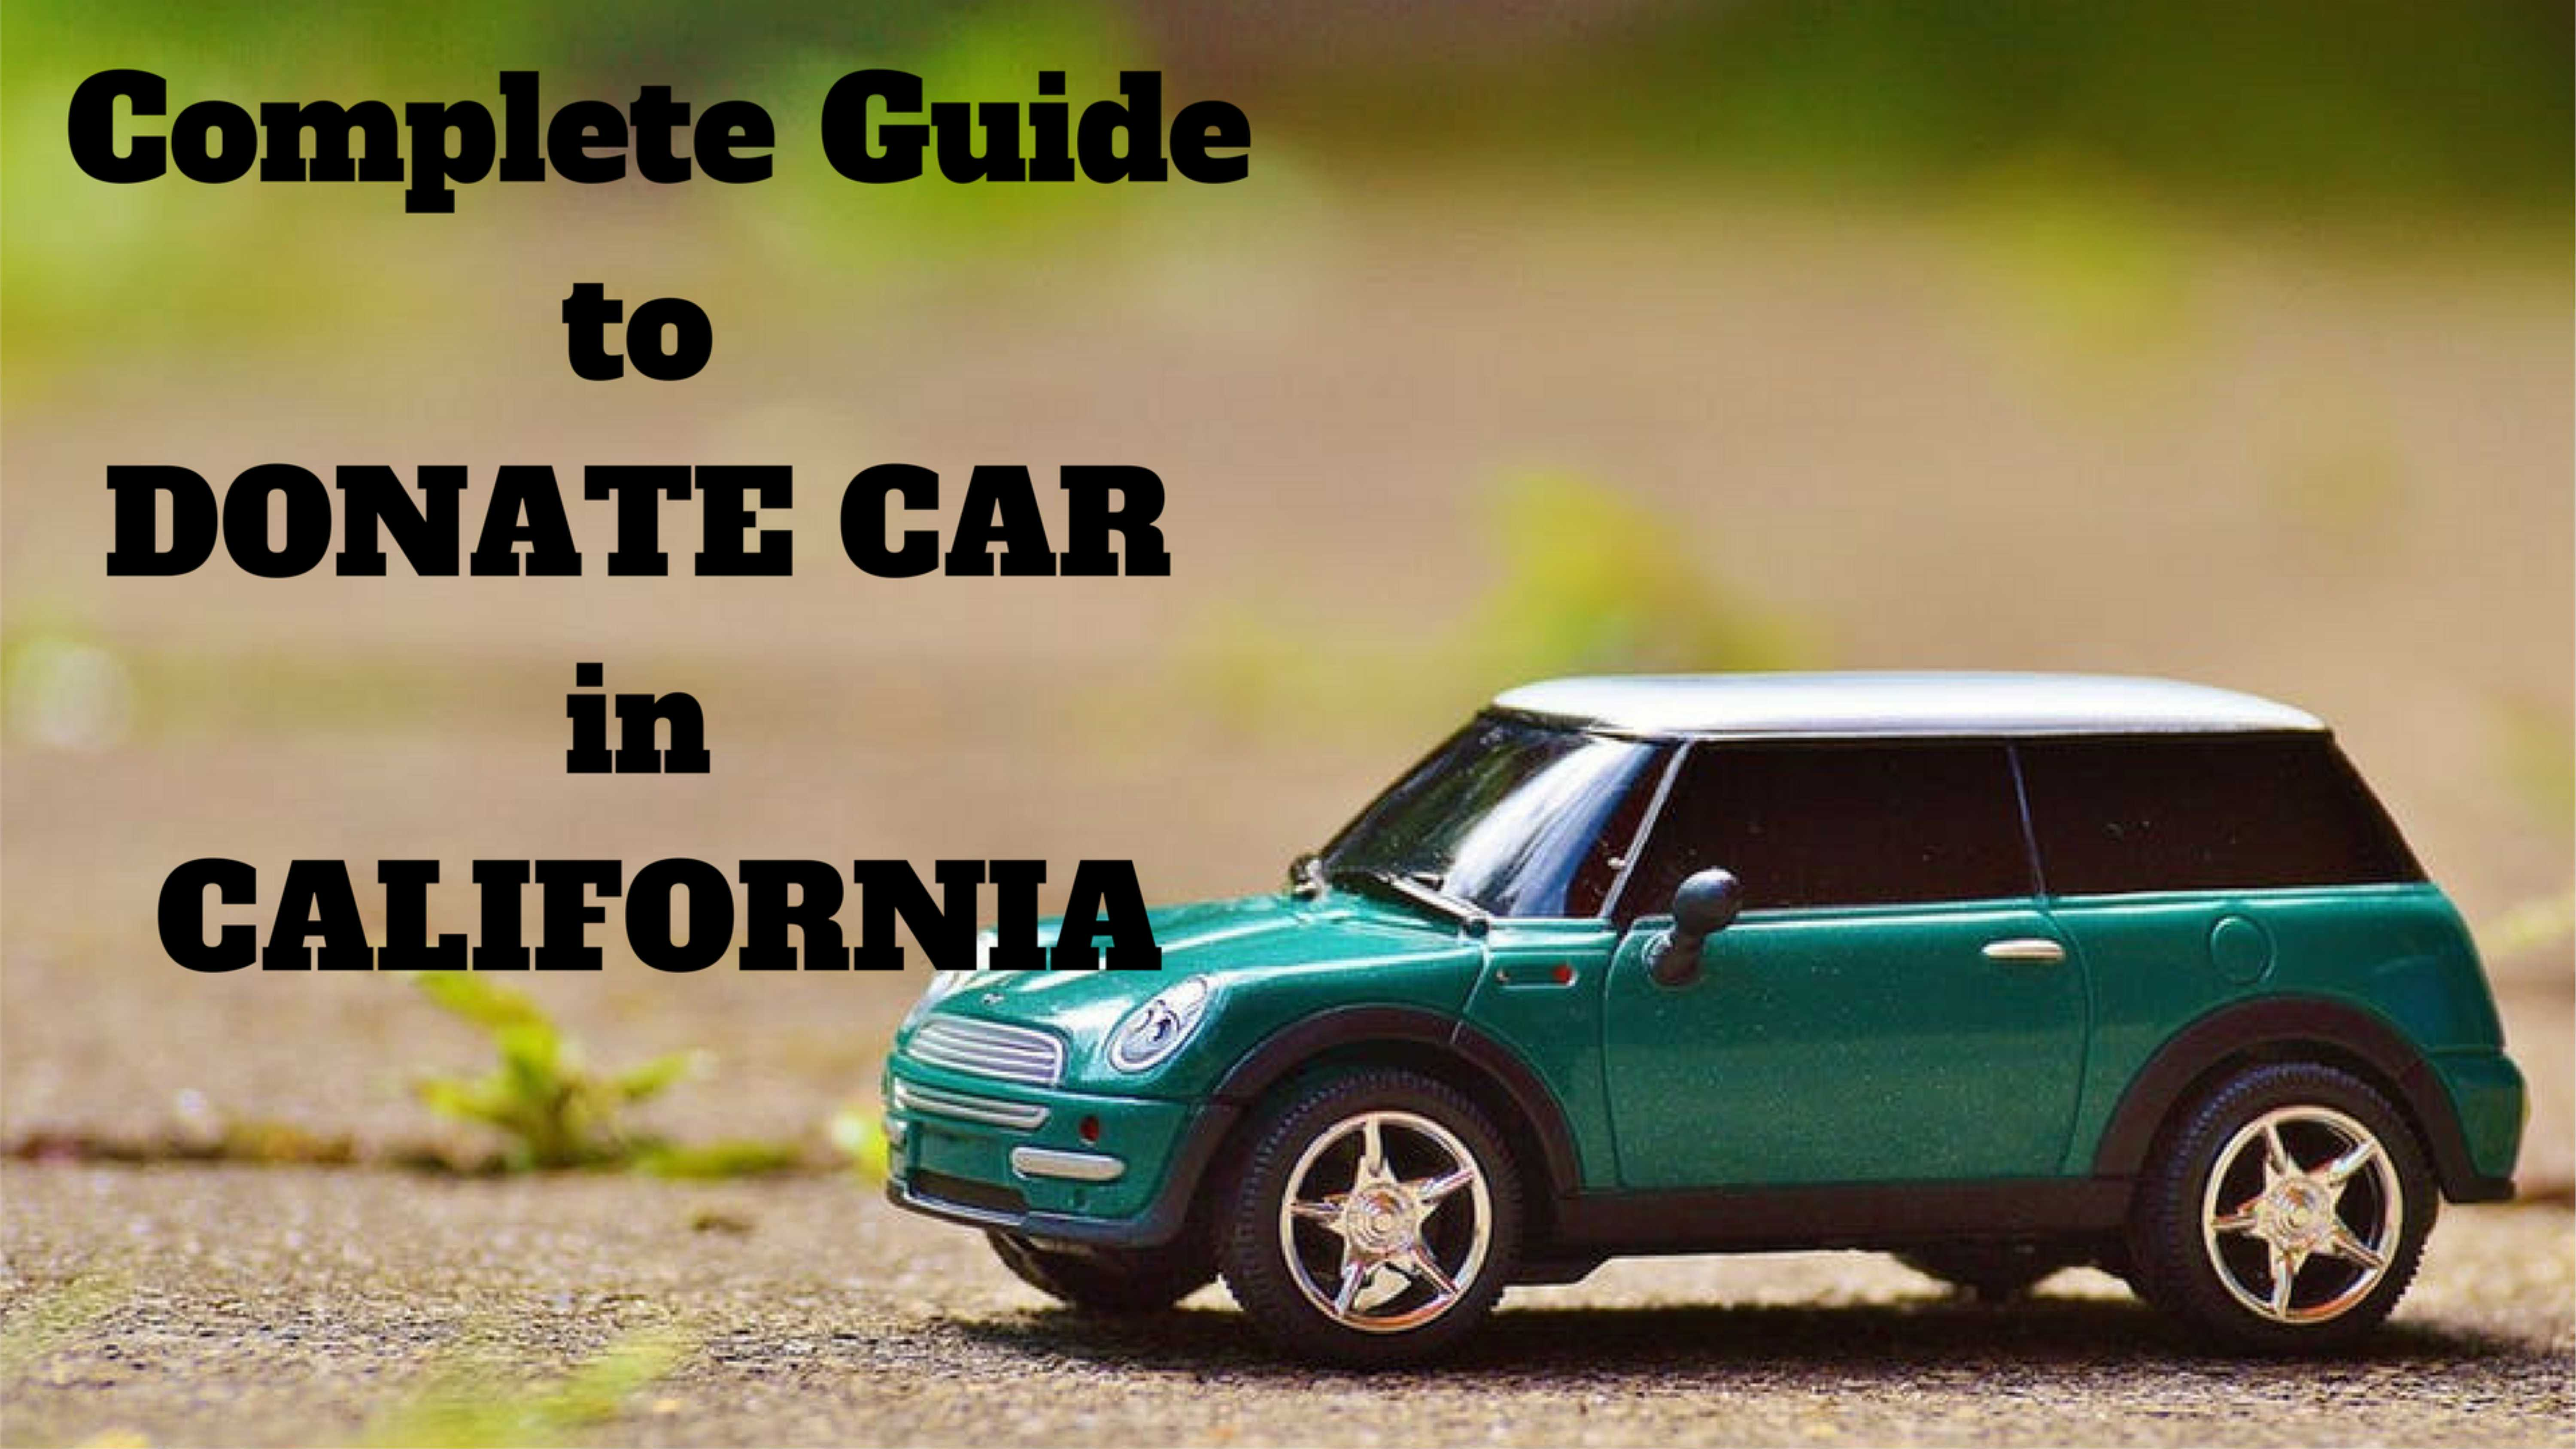 Donate to Car in California 15